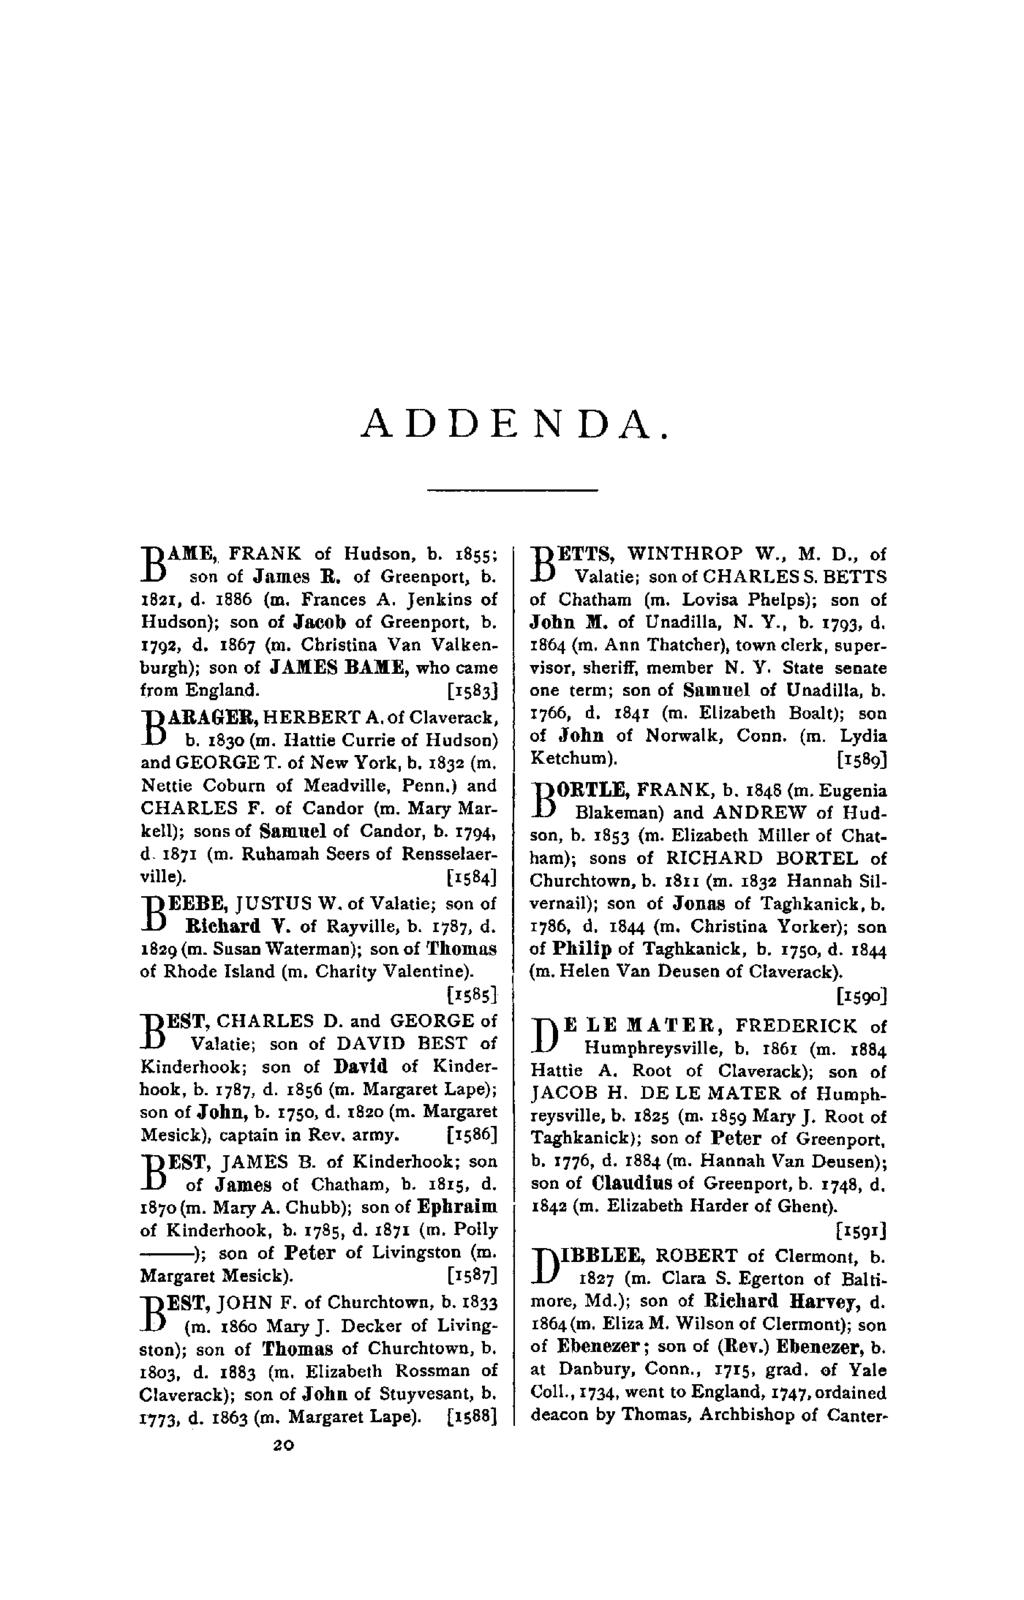 ADDENDA. AME, FRANK of Hudson, b. 1855; B son of James R. of Greenport, b. 1821, d. 1886 (01. Frances A. Jenkins of Hudson); son of Jacob of Greenport, b. 1792, d. 1867 (01.